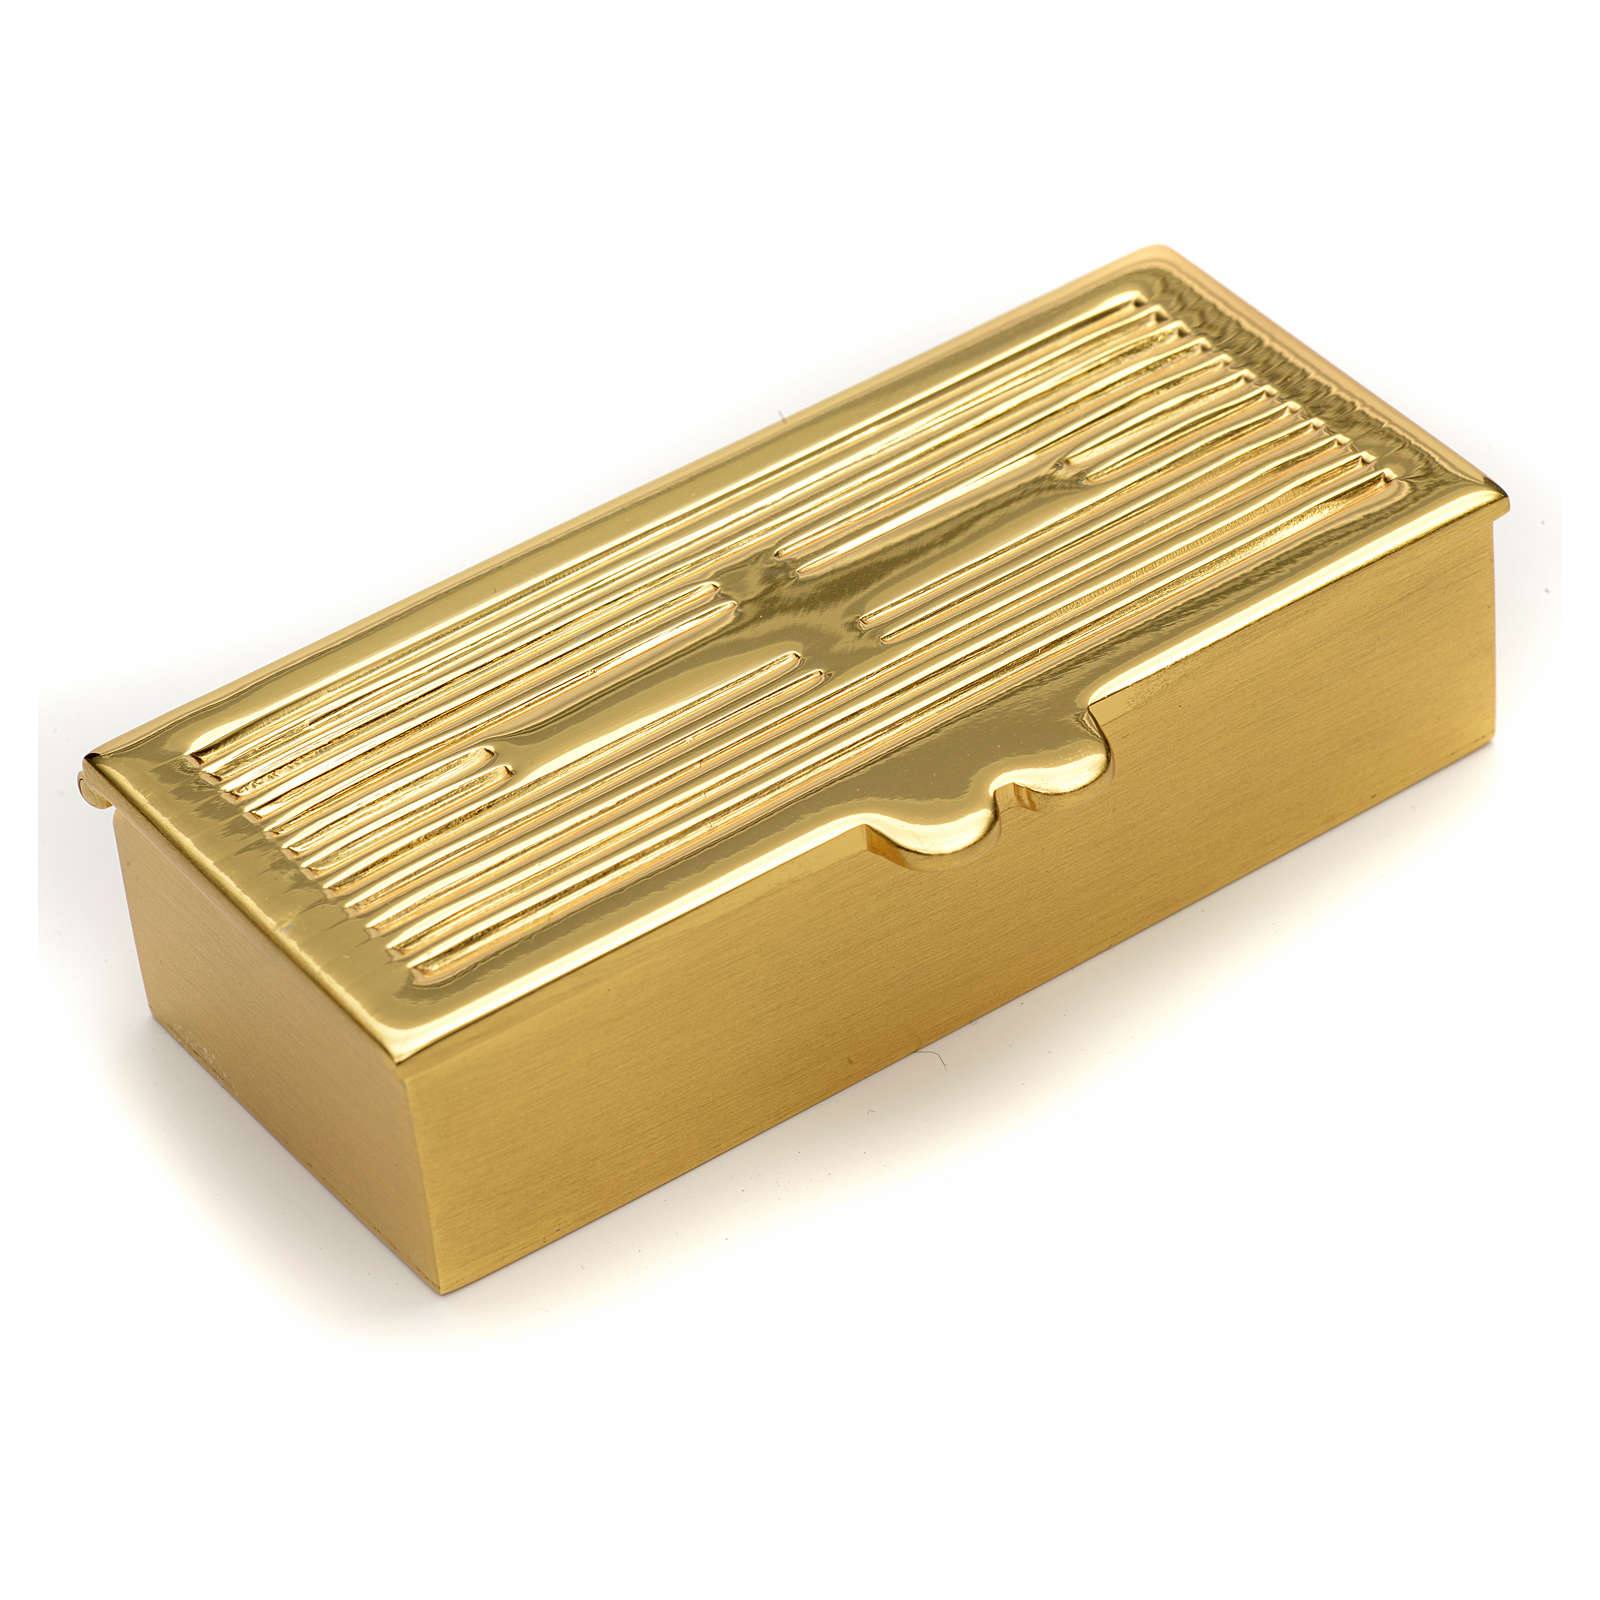 Golden box for monstrance key 4